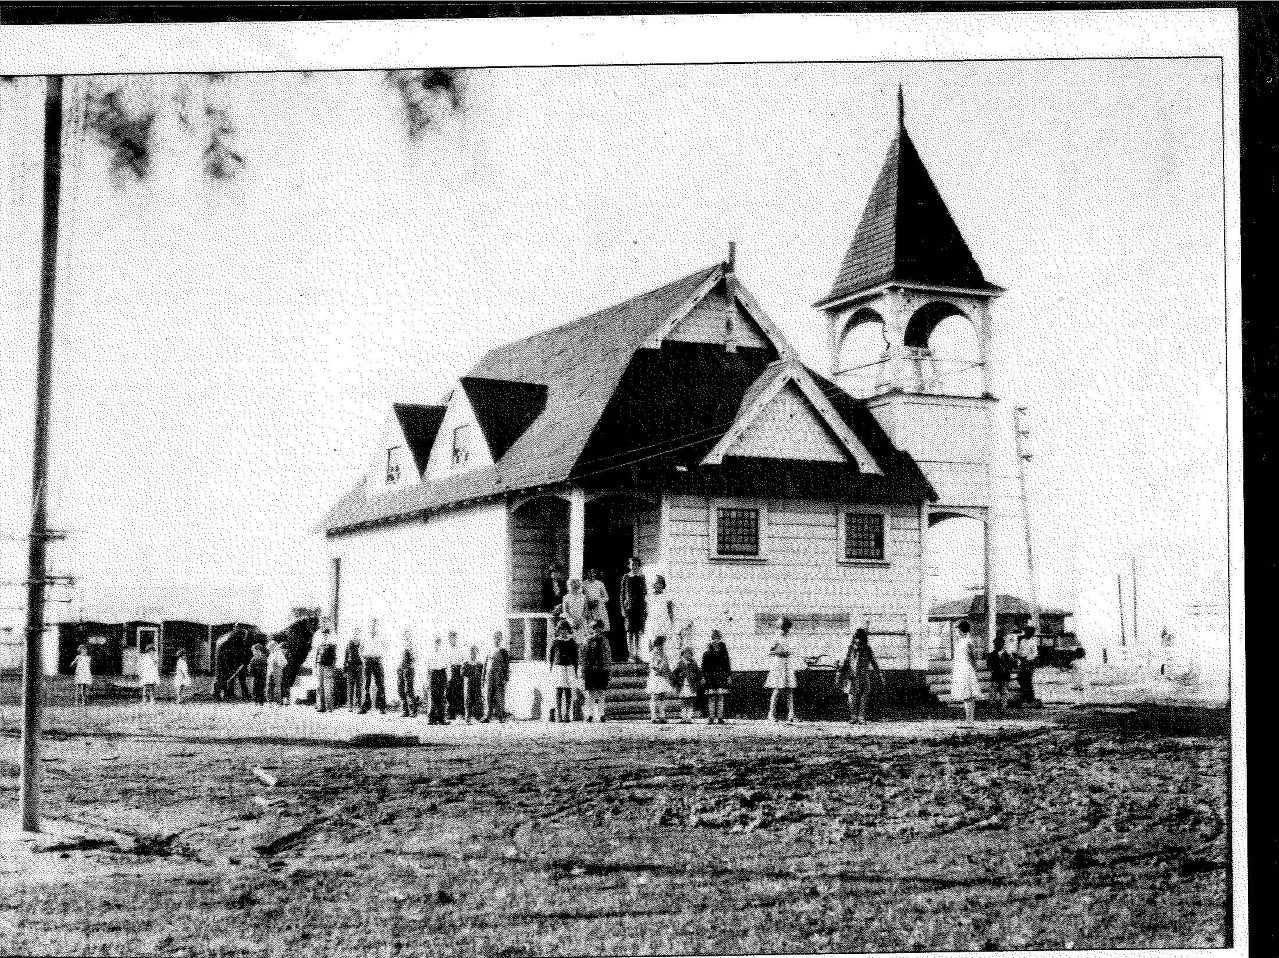 An early photo of the Pleasant Valley School, which eventually grew to become the Pleasant Valley School District, now home to more than 6,500 students. The district is celebrating its 150th anniversary this year.